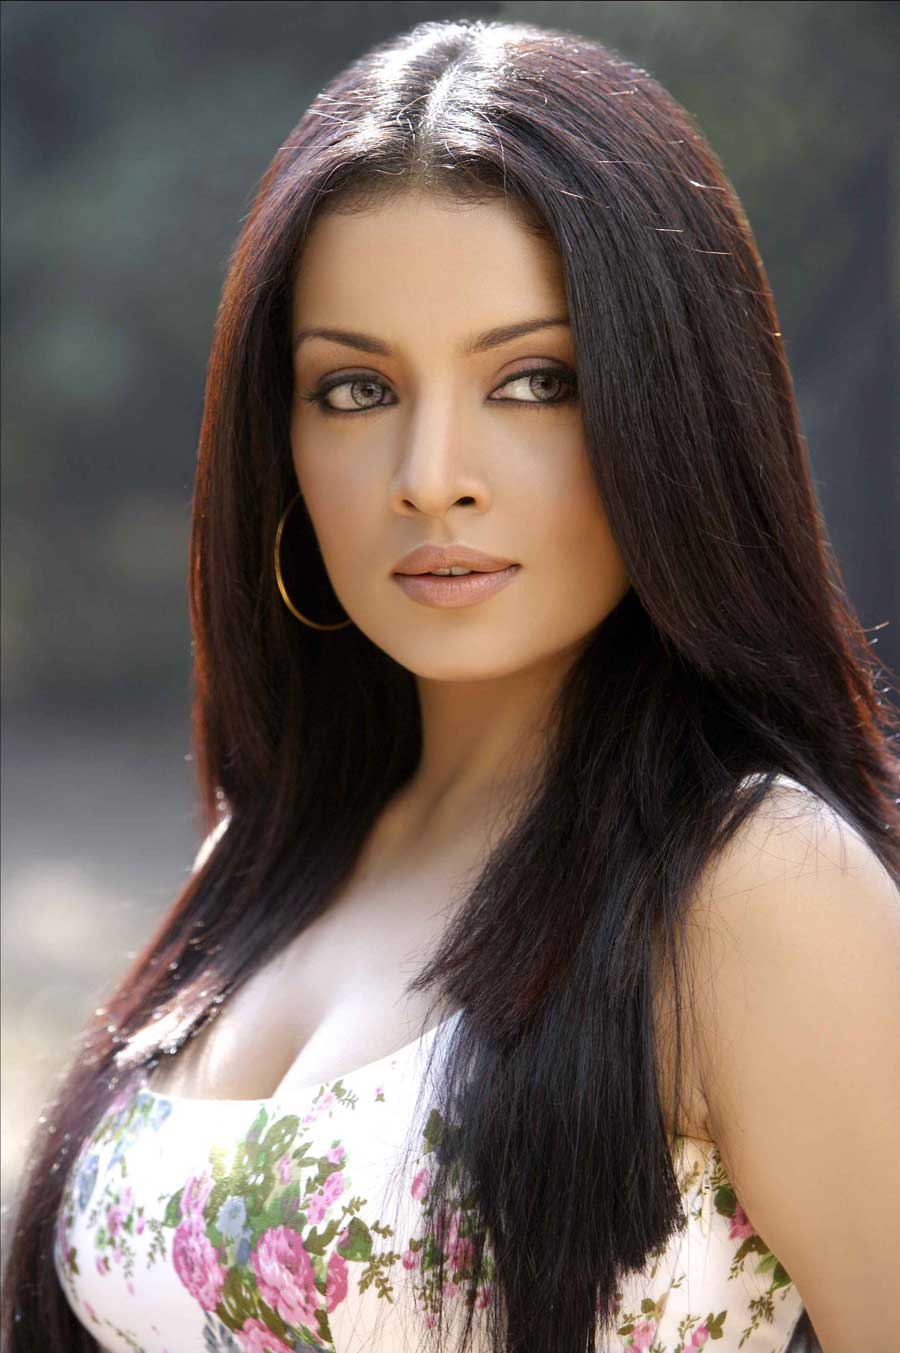 Bollywood Celebrity Manager Contact Numbers - +91-87XXXXXXXXX: OFFICIAL CONTACT- Celina Jaitly Number +91 87585***3 For Event Booking, Celebrity Manager Booking Actor Contact Details Live Show performance brand endorsement Contact Number Official Email